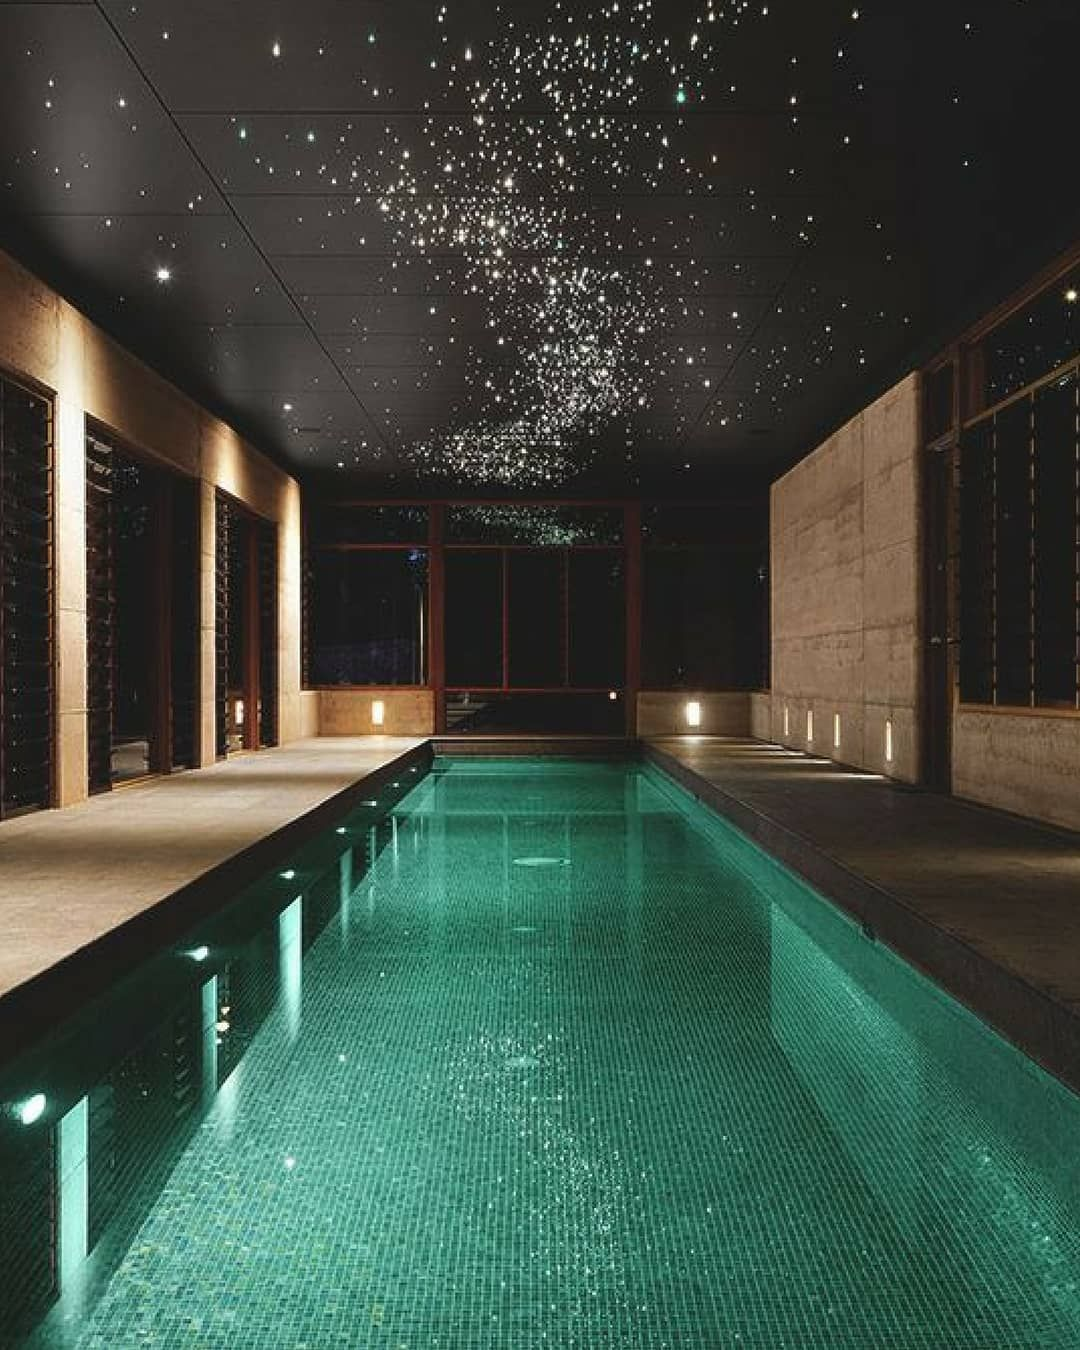 Mr Pool Man On Instagram Anyone Else Thinking About Diving In This Pool Right Now Top Interior Design Firms Interior Design Instagram Best Interior Design